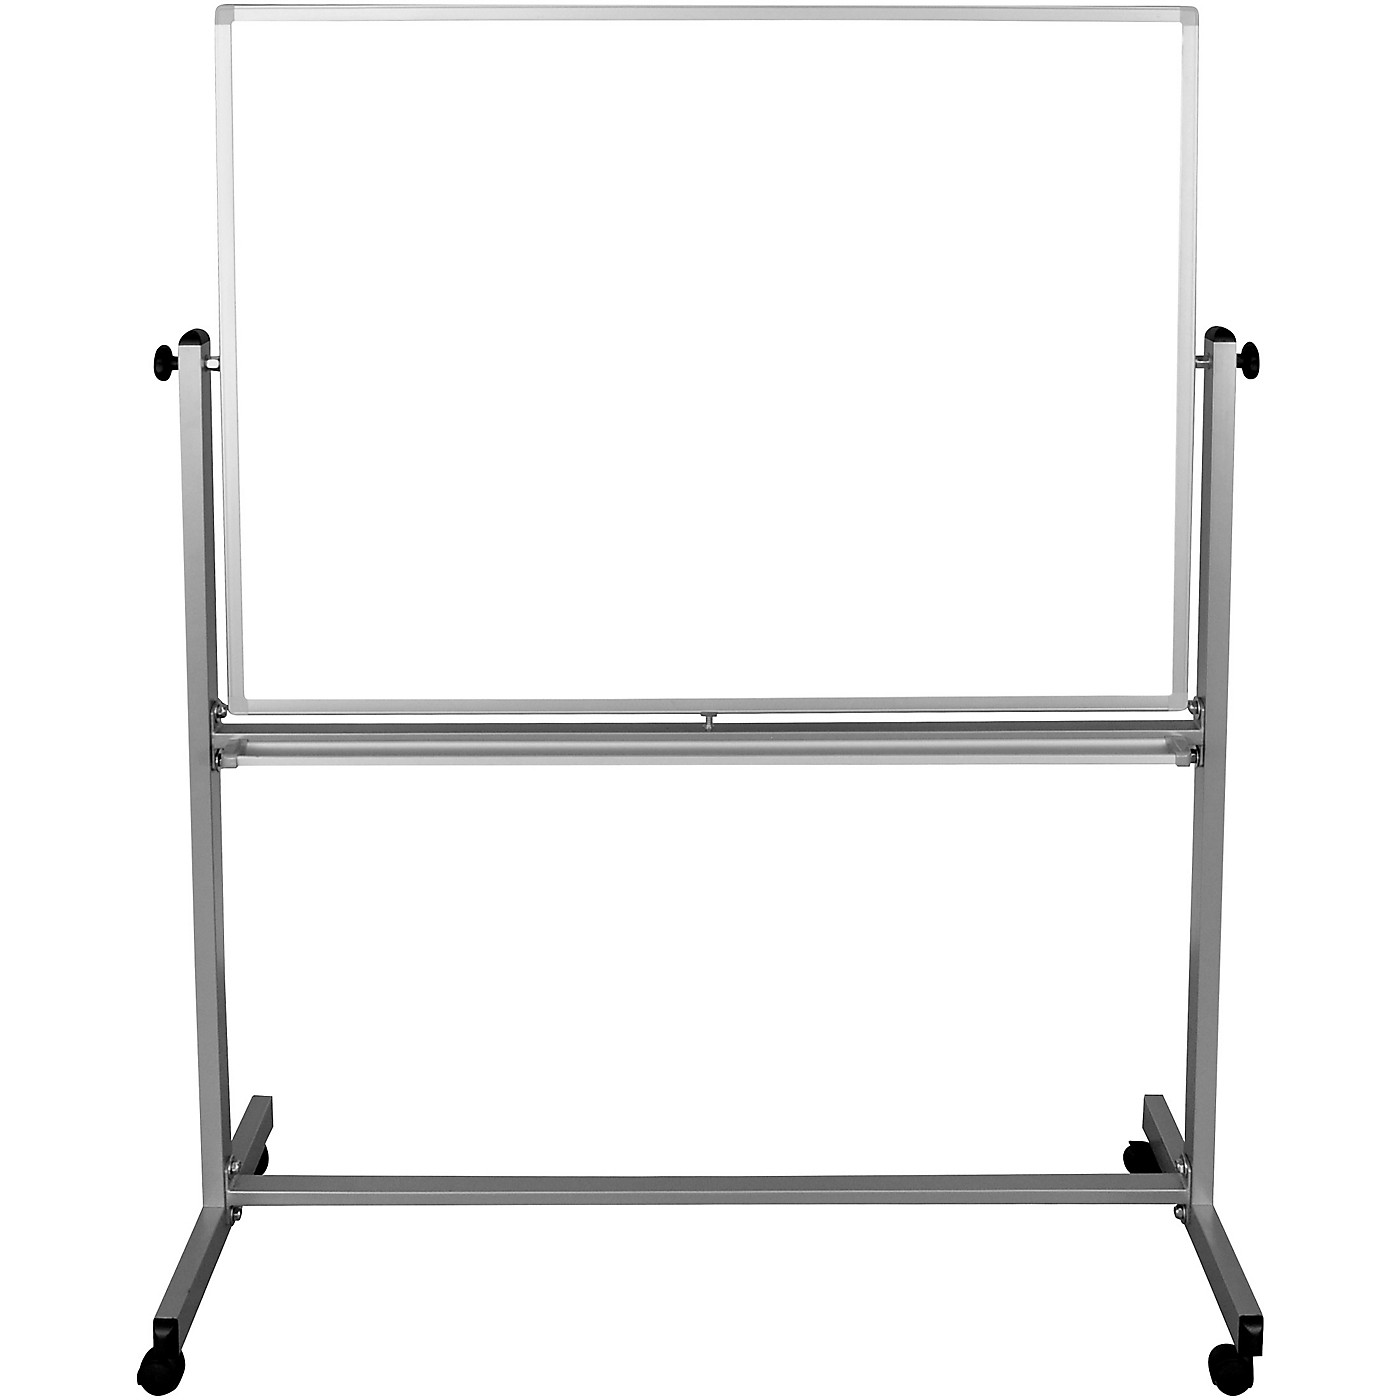 H. Wilson 48x36 Double Sided Mobile Whiteboard thumbnail